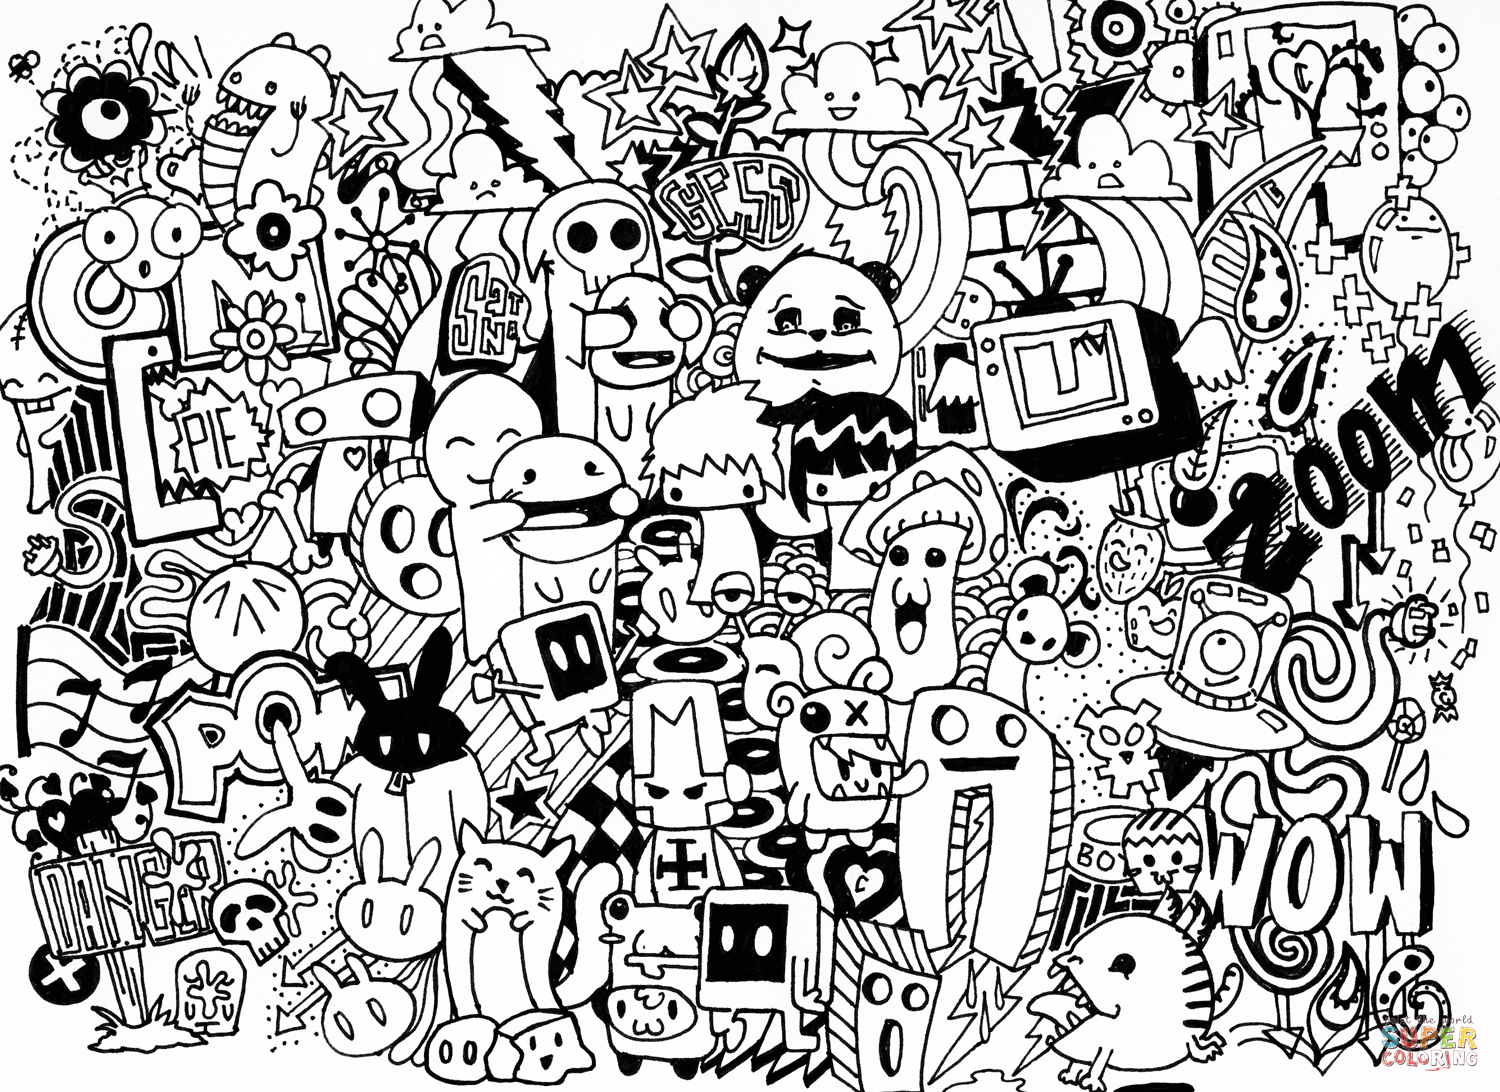 Doodle Art Coloring Pages | Free Coloring Pages | Doodled In 2019 - Free Printable Doodle Art Coloring Pages